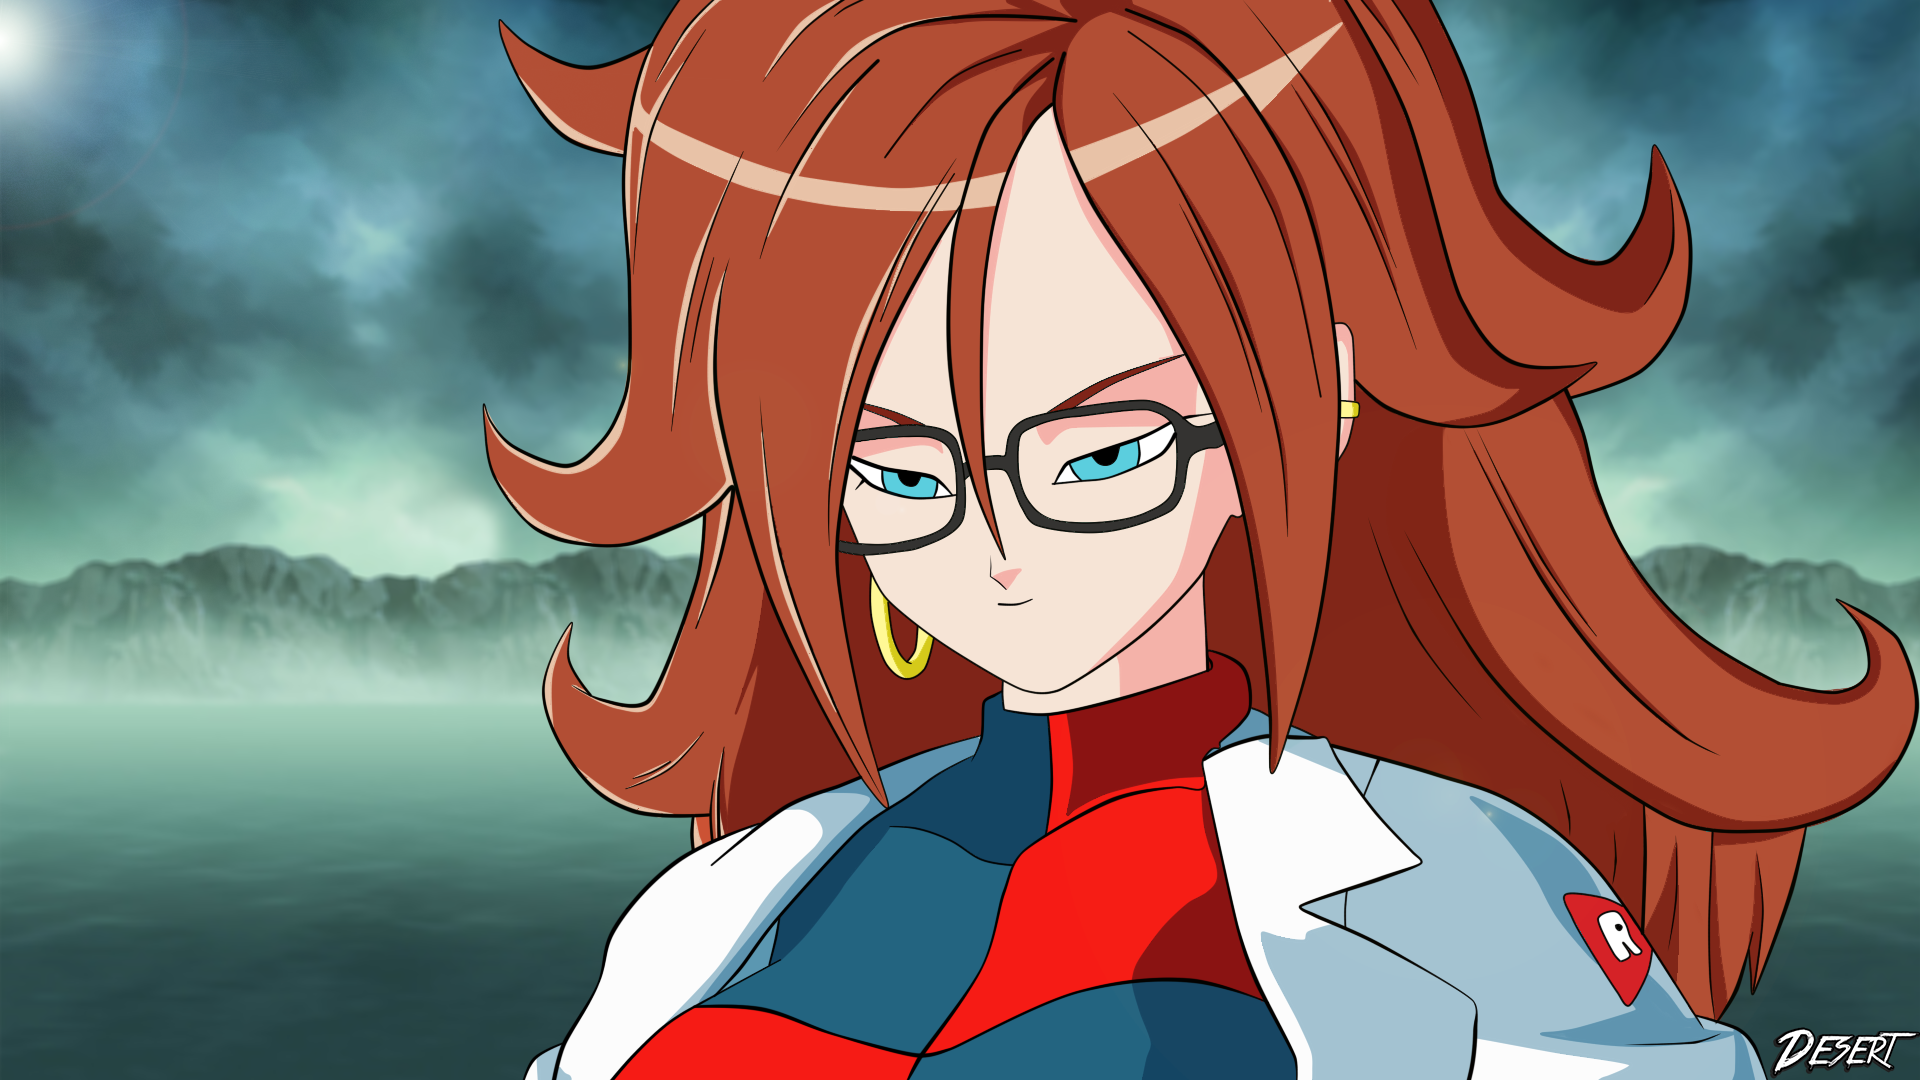 Dragon Ball Z Wallpaper Android: Android 21 Wallpaper By DesertWiggle On DeviantArt